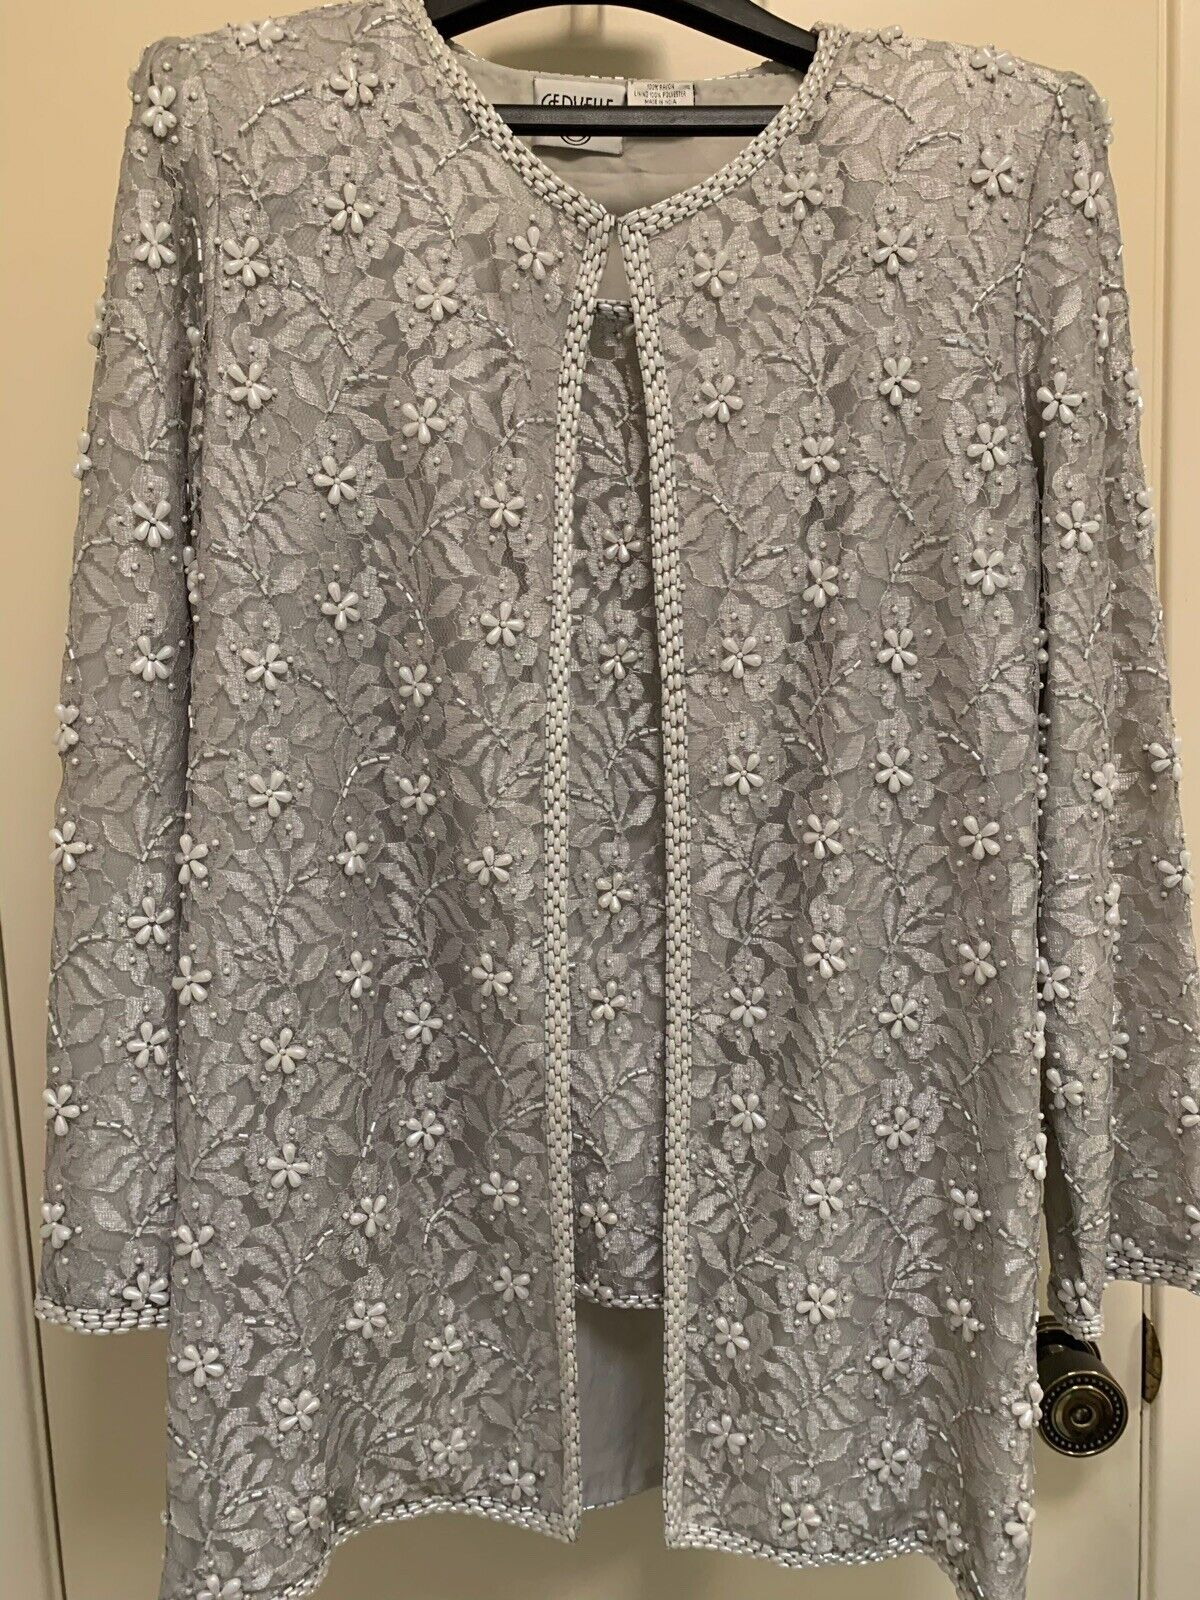 Cervelle Womens Silver Grey Beaded Pearls Evening Jacket & Top M L Holidays (p)